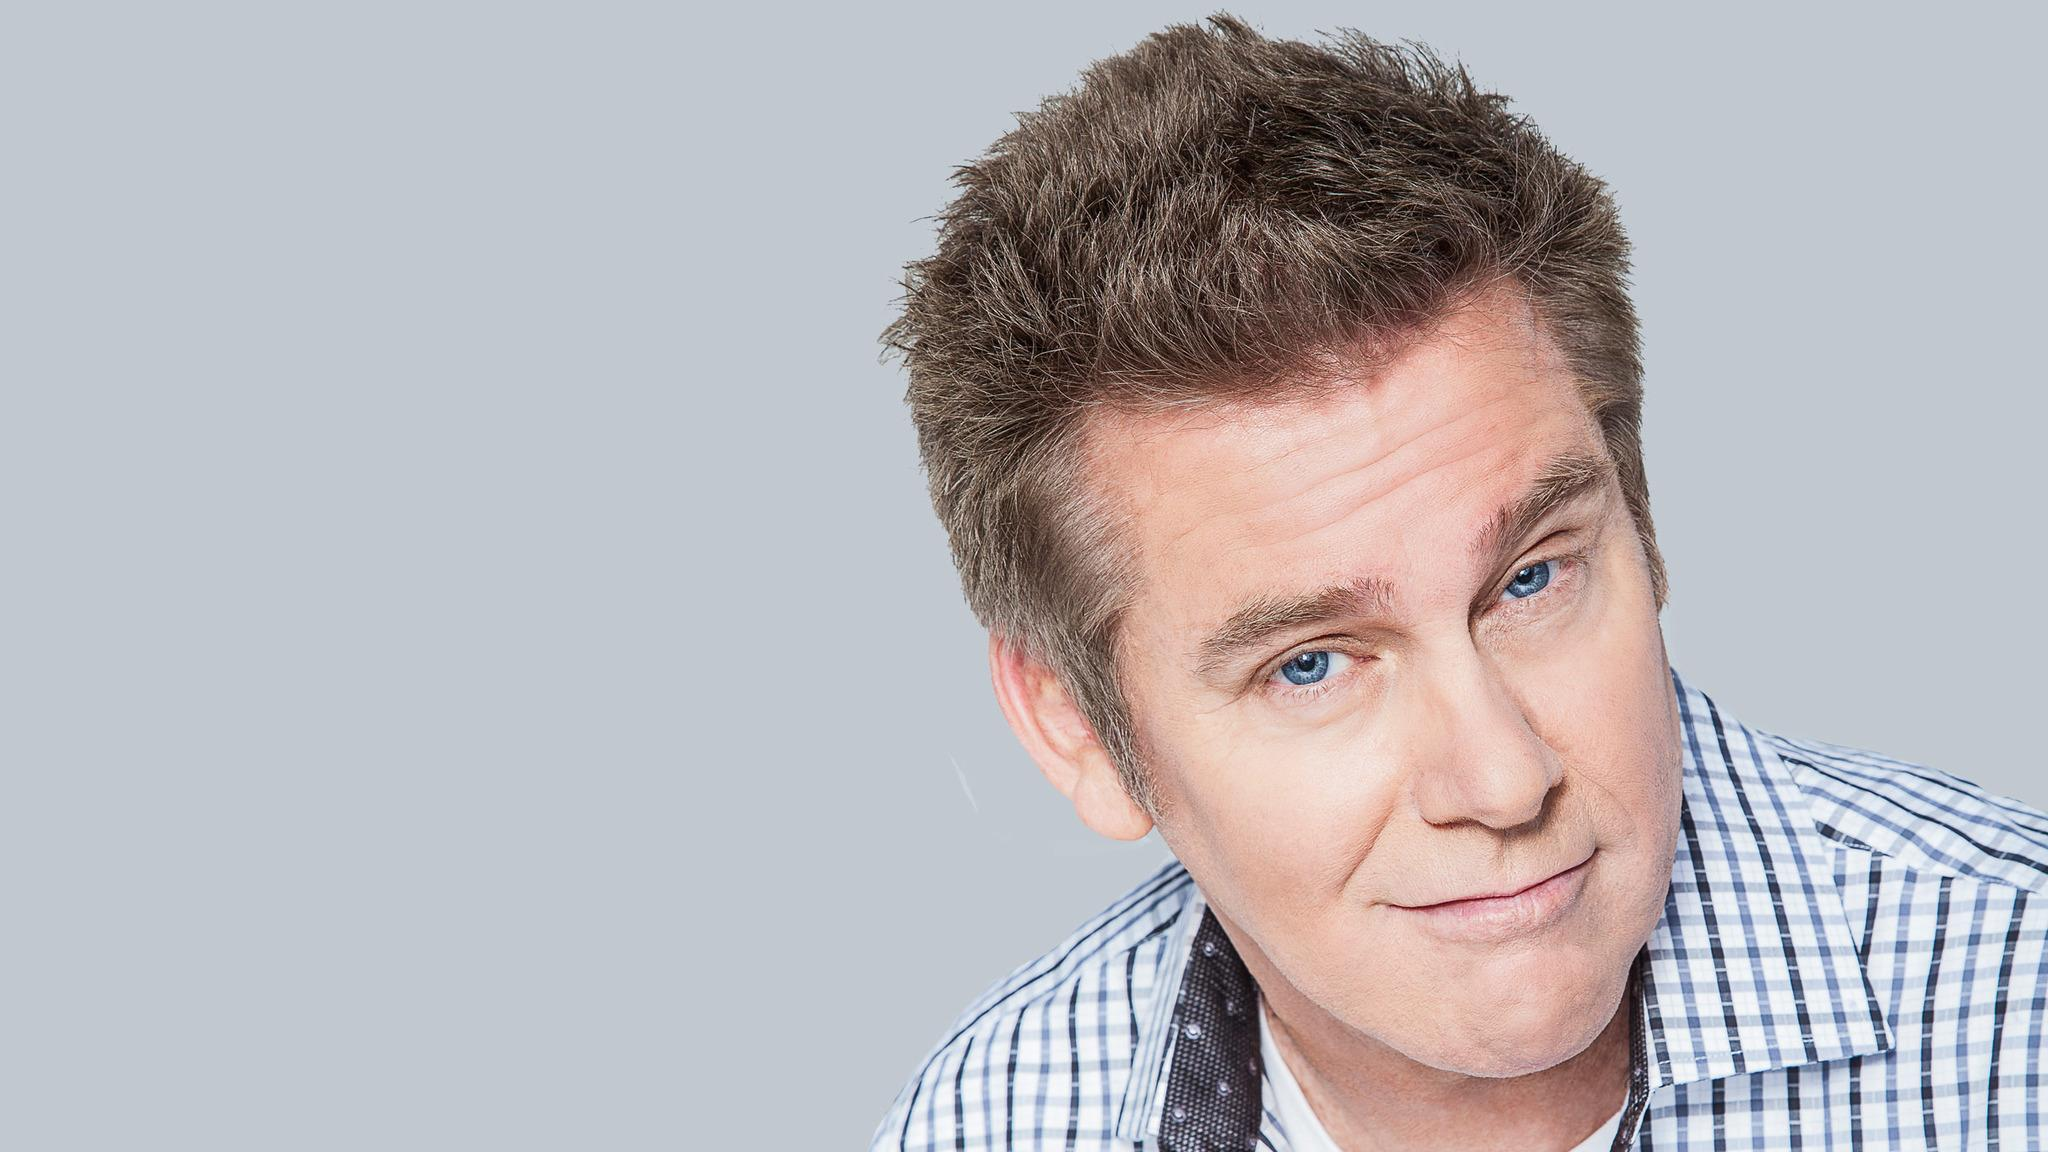 Brian Regan at Morrison Center for the Performing Arts - Boise, ID 83725